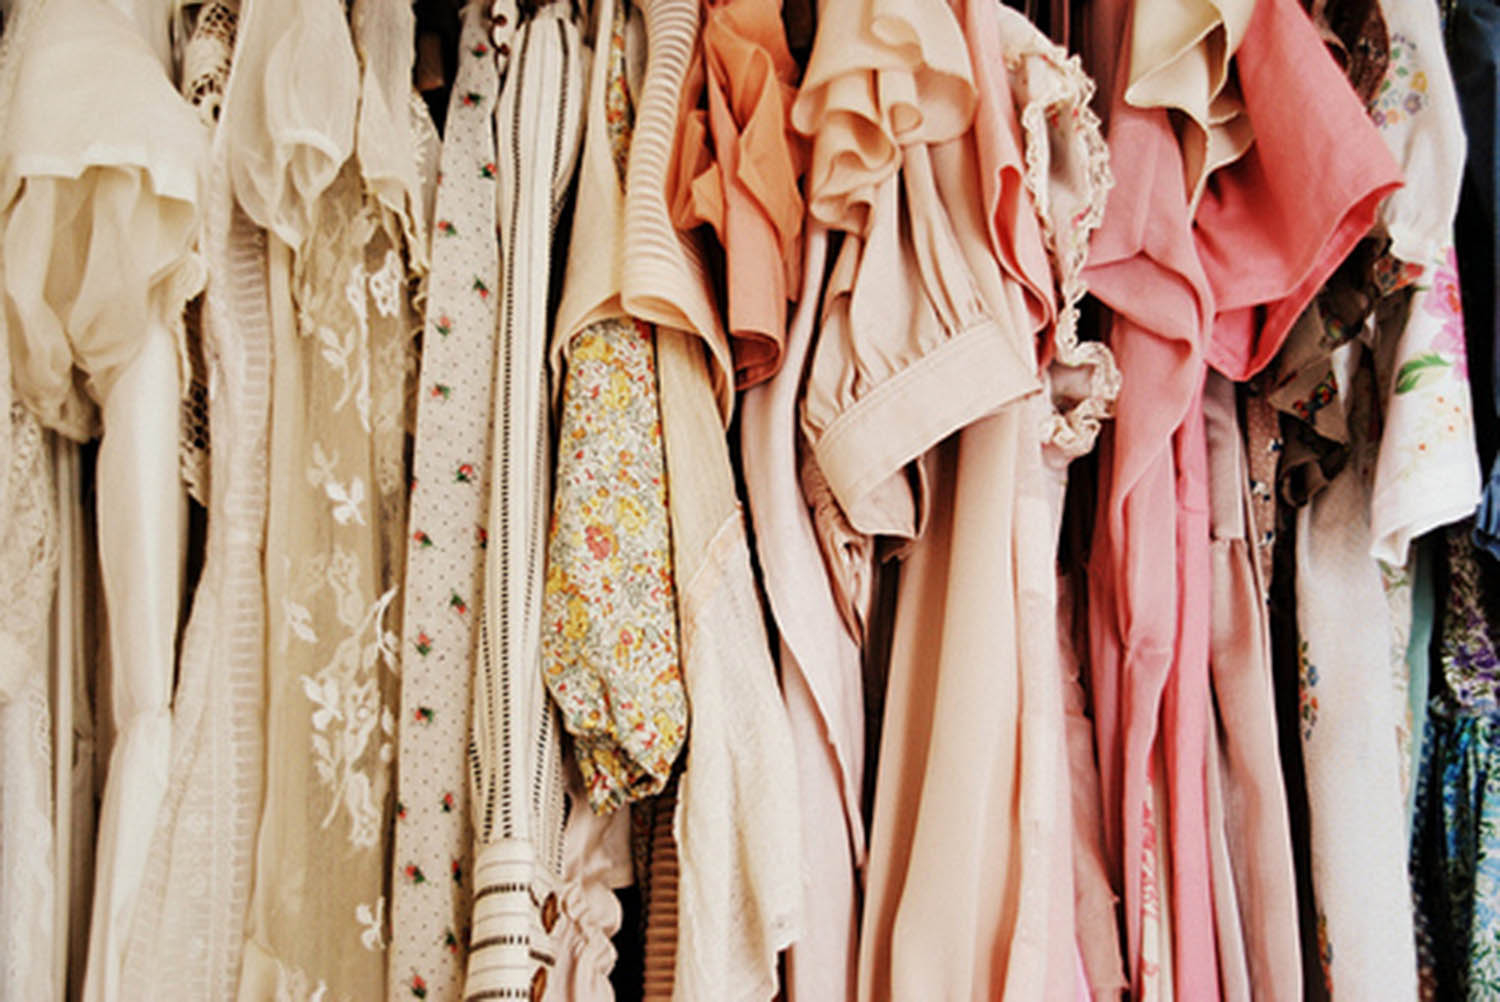 1e1e36803d Take a look at our 5 favorite online vintage consignment shops below